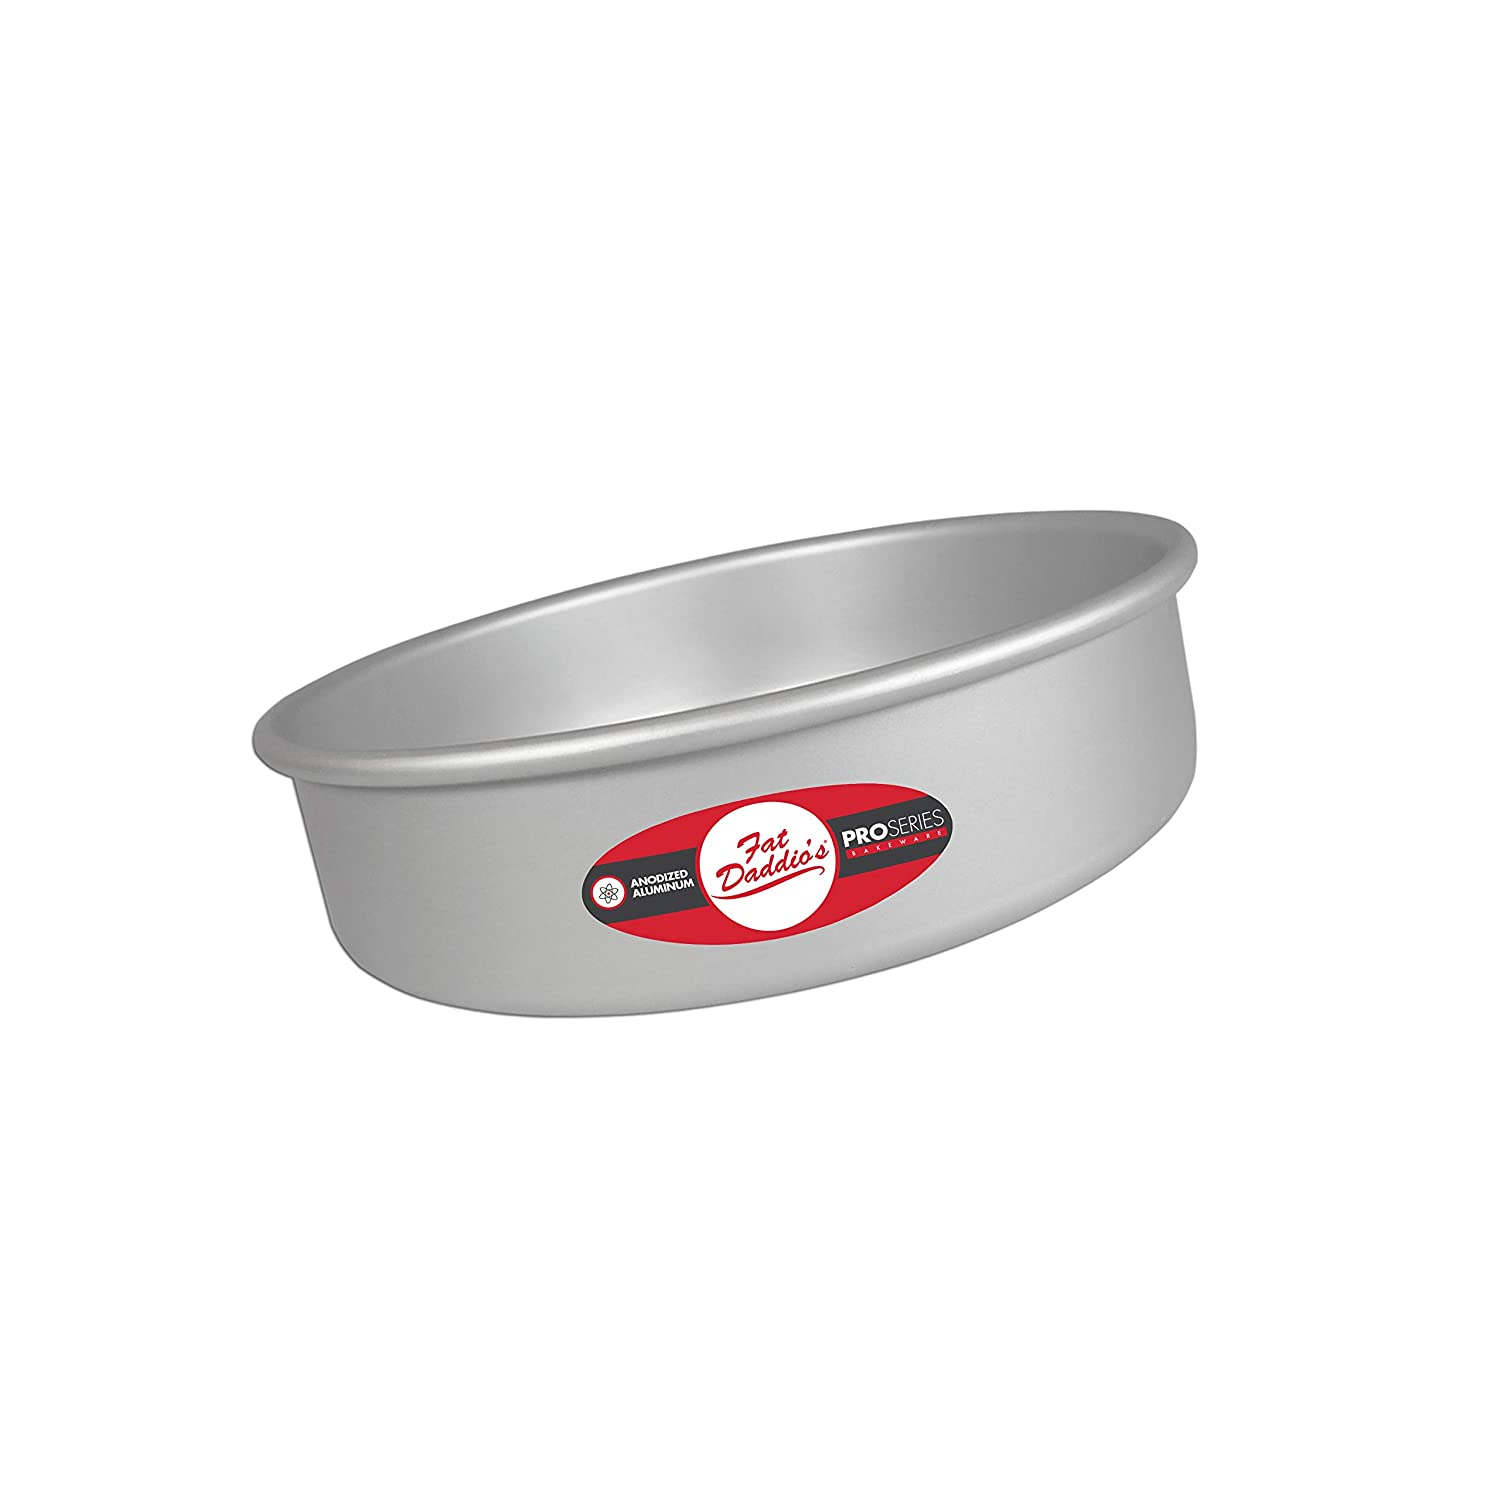 Fat Daddio's Anodized Aluminum Round Cake Pan, 6 Inches by 3 Inches